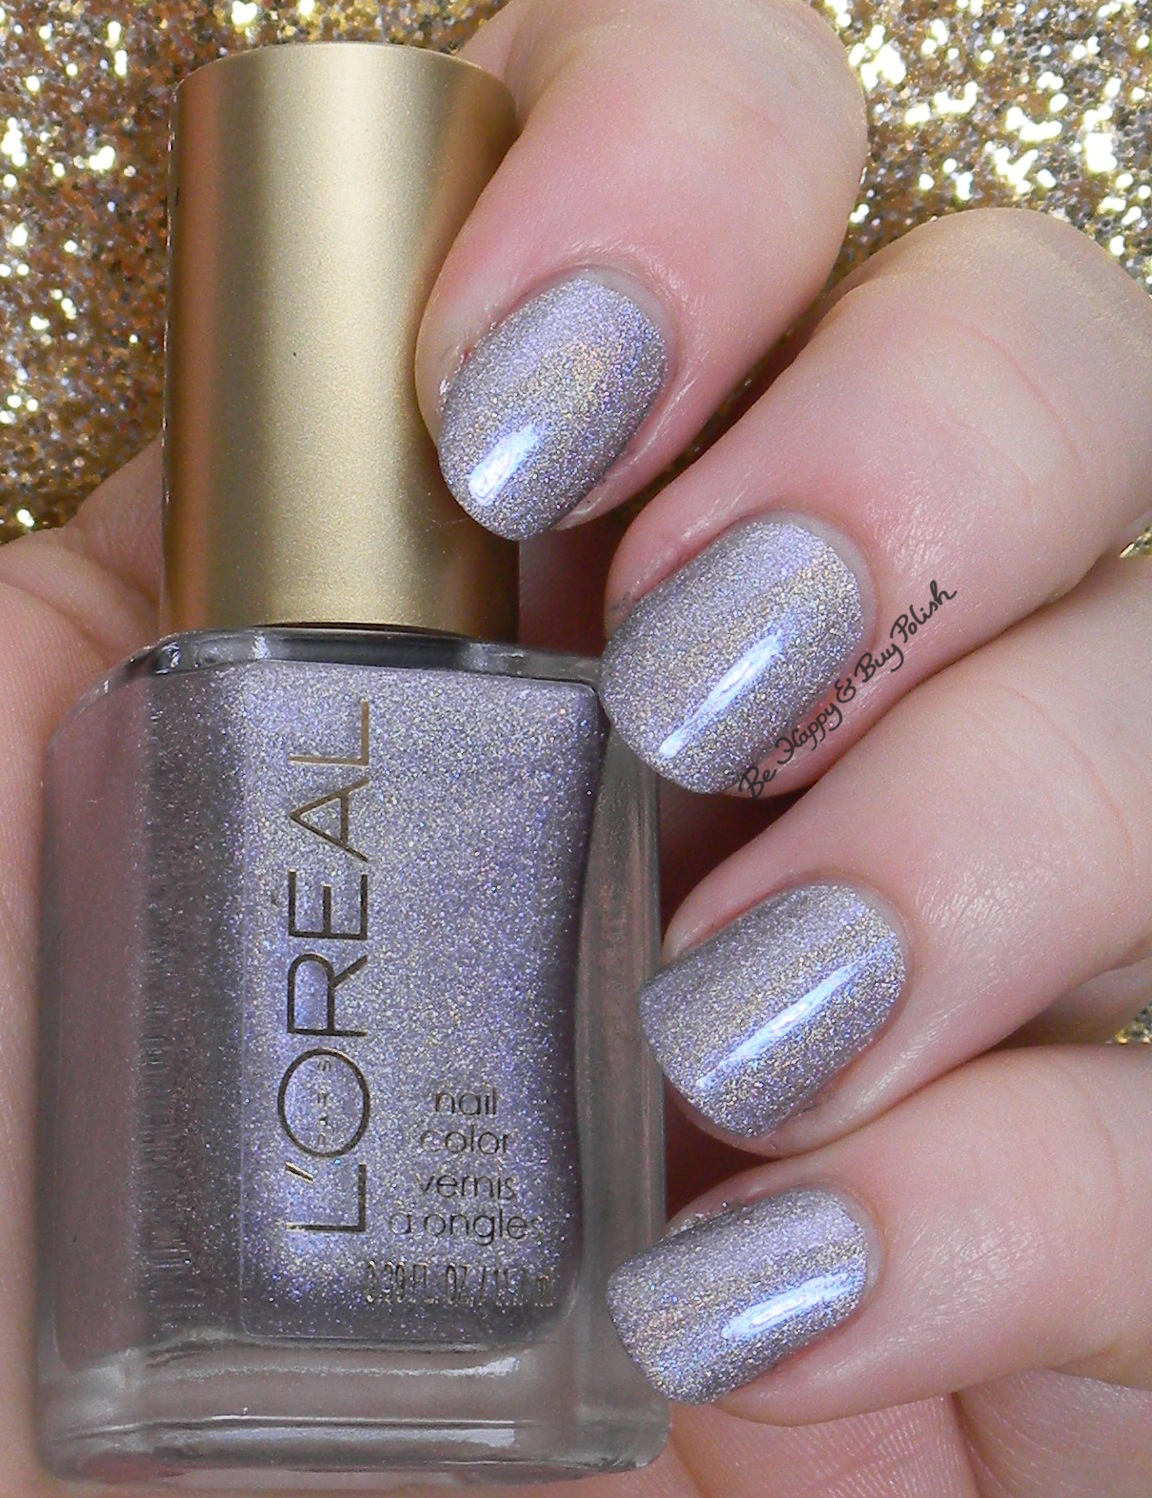 L\'Oreal Dark Sides of Grey nail polishes swatches + review | Be ...